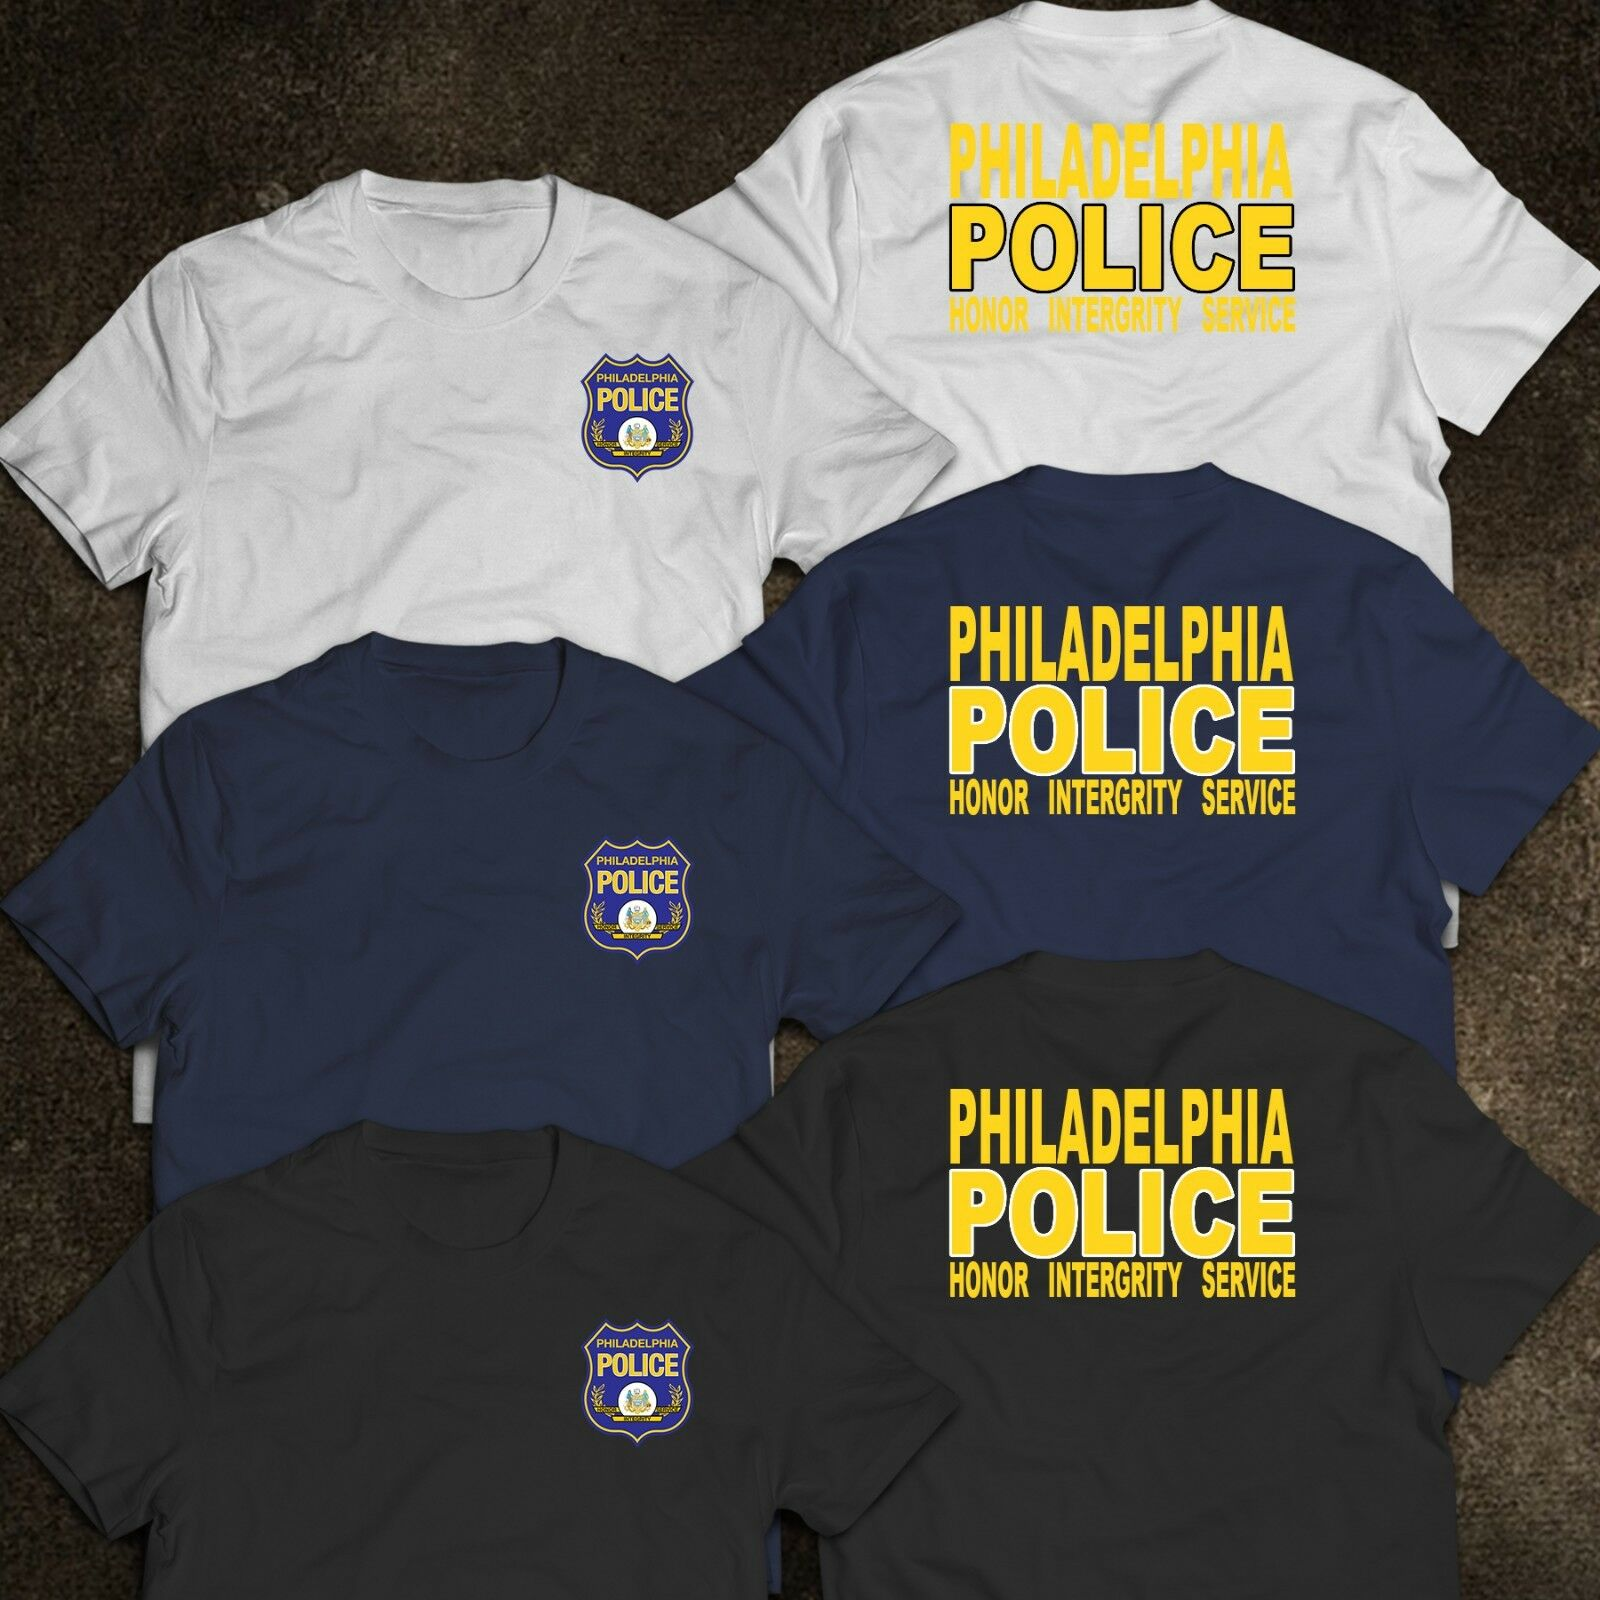 2019 Funny New Philadelphia Police Department United States Honor Integrity Service T-Shirt Double Side Unisex Tee